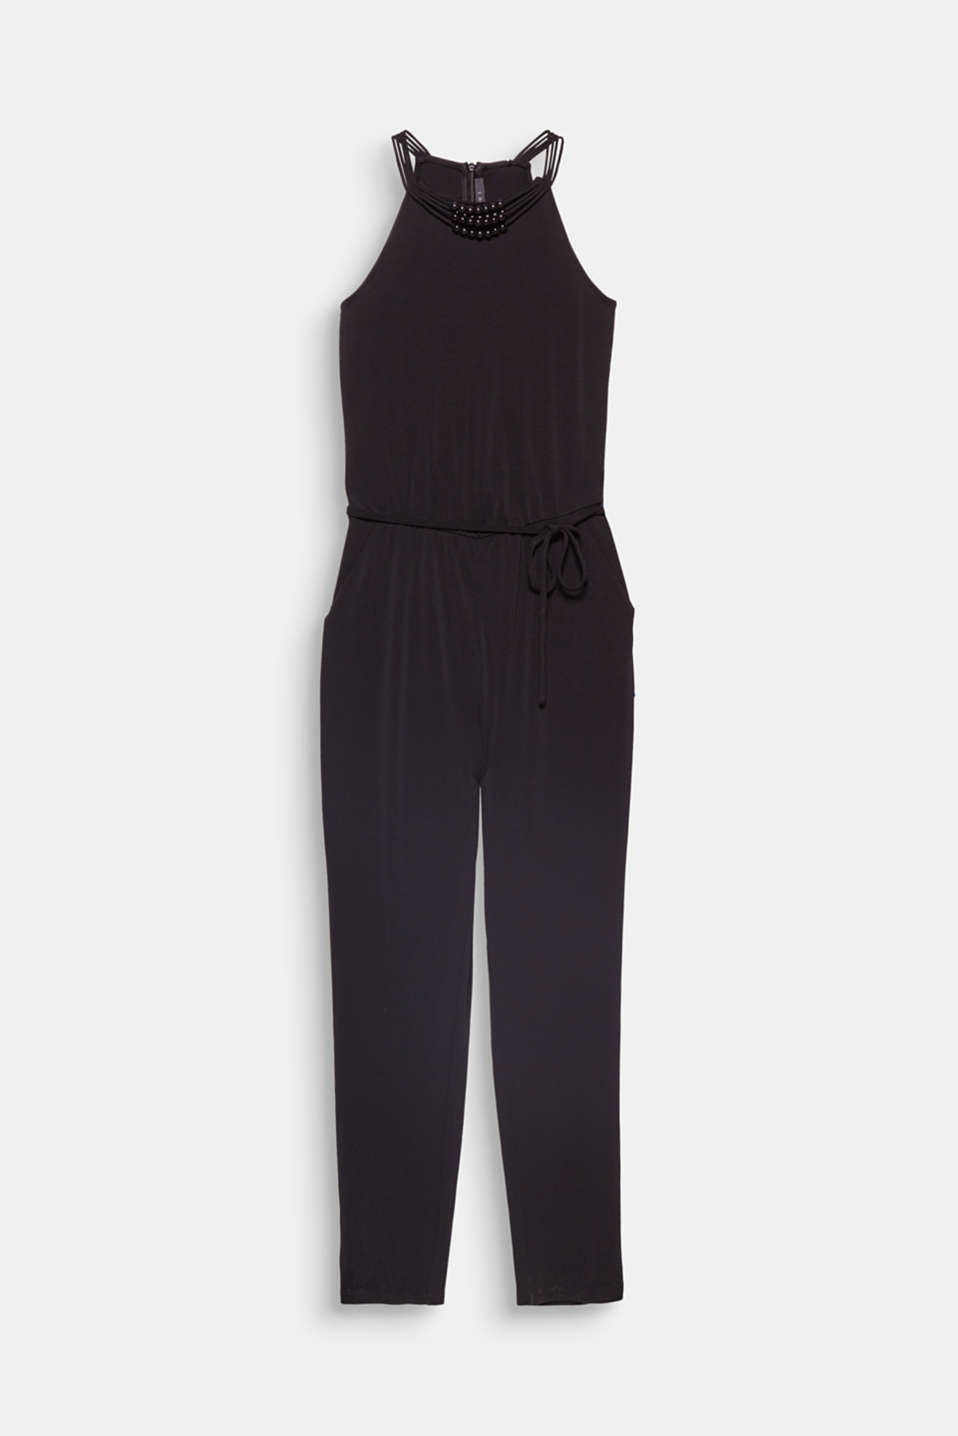 Works for formal occasions and an after-work party: softly draped jersey jumpsuit with cut-away shoulders and decorative beads on the neckline!